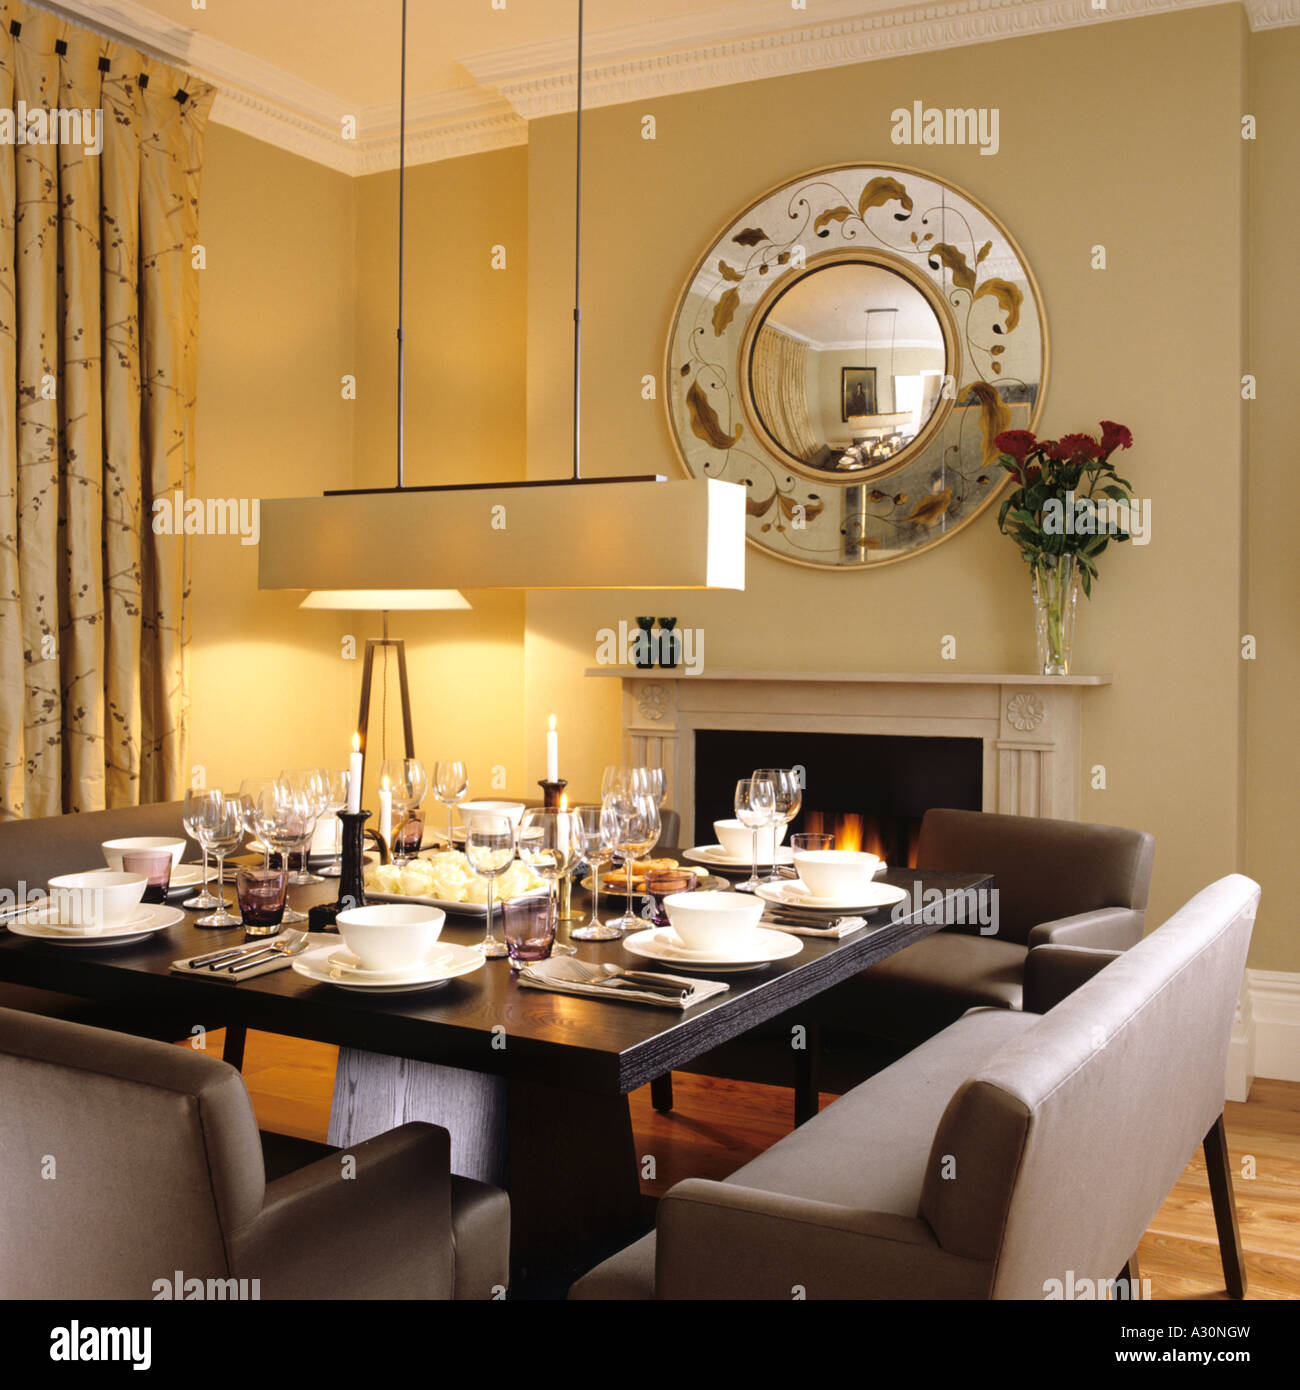 Dining room table with bench seating - Square Dining Room Table With Double Bench Seating And Open Fire Under Circular Mirror